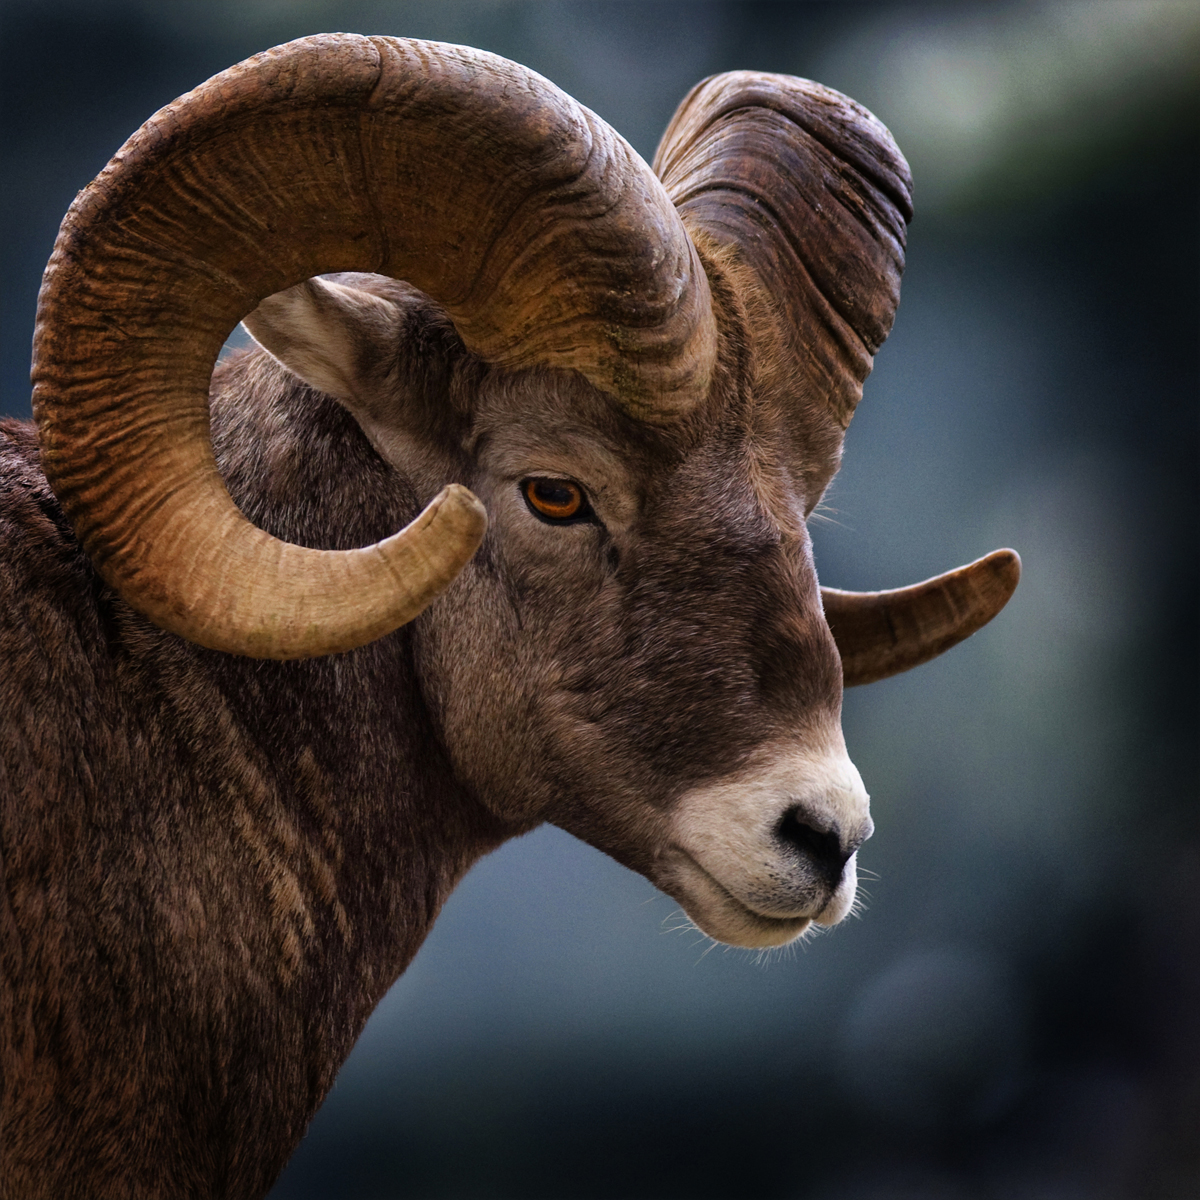 Ram Big Horn >> File:Big Horn Sheep, Montana, USA.jpg